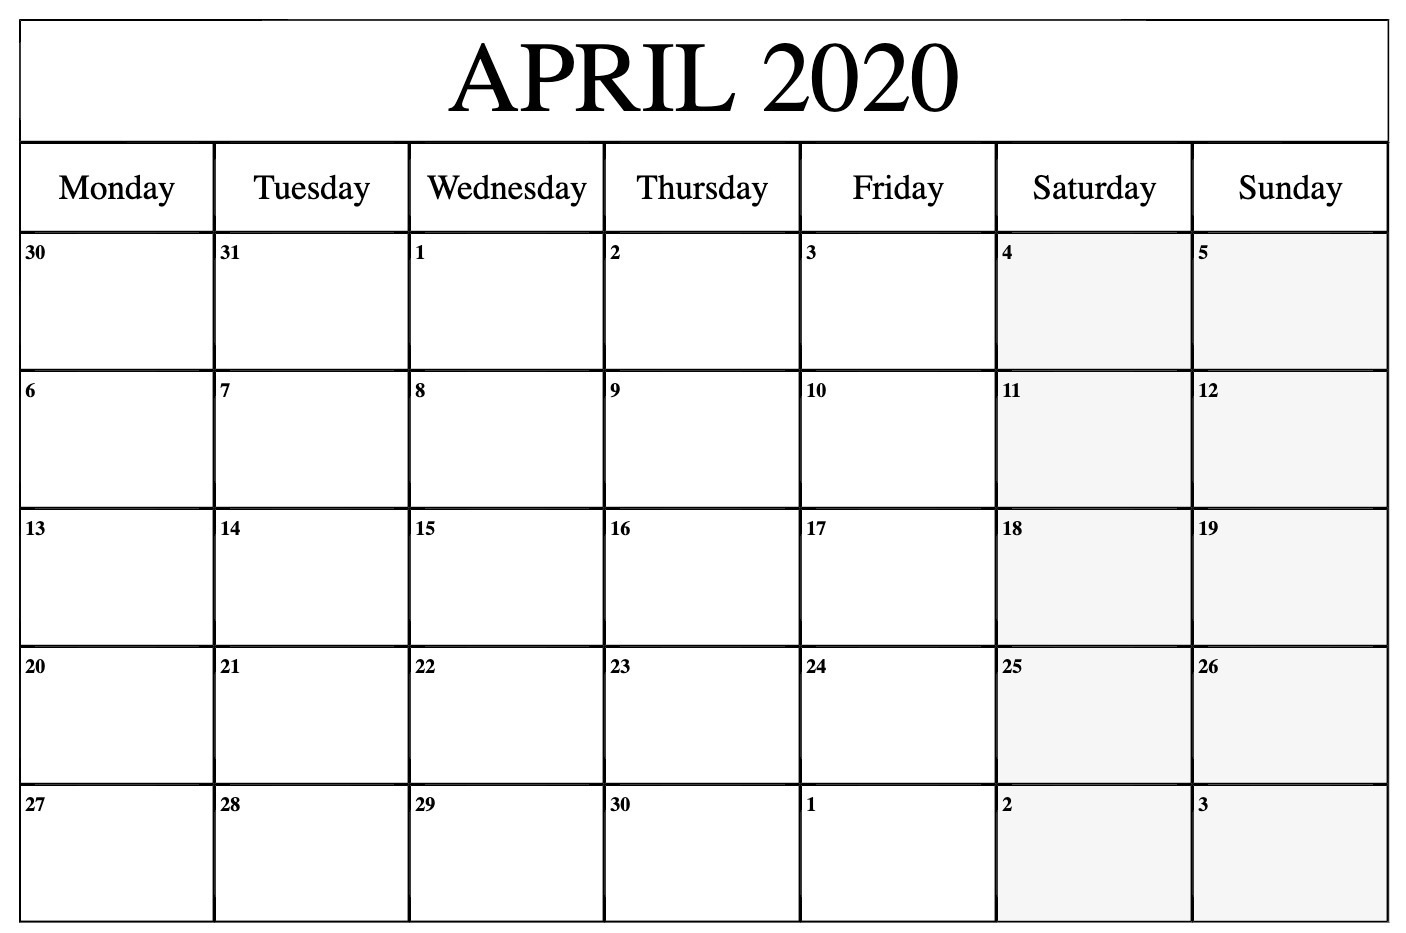 April 2020 Calendar Printable Monday